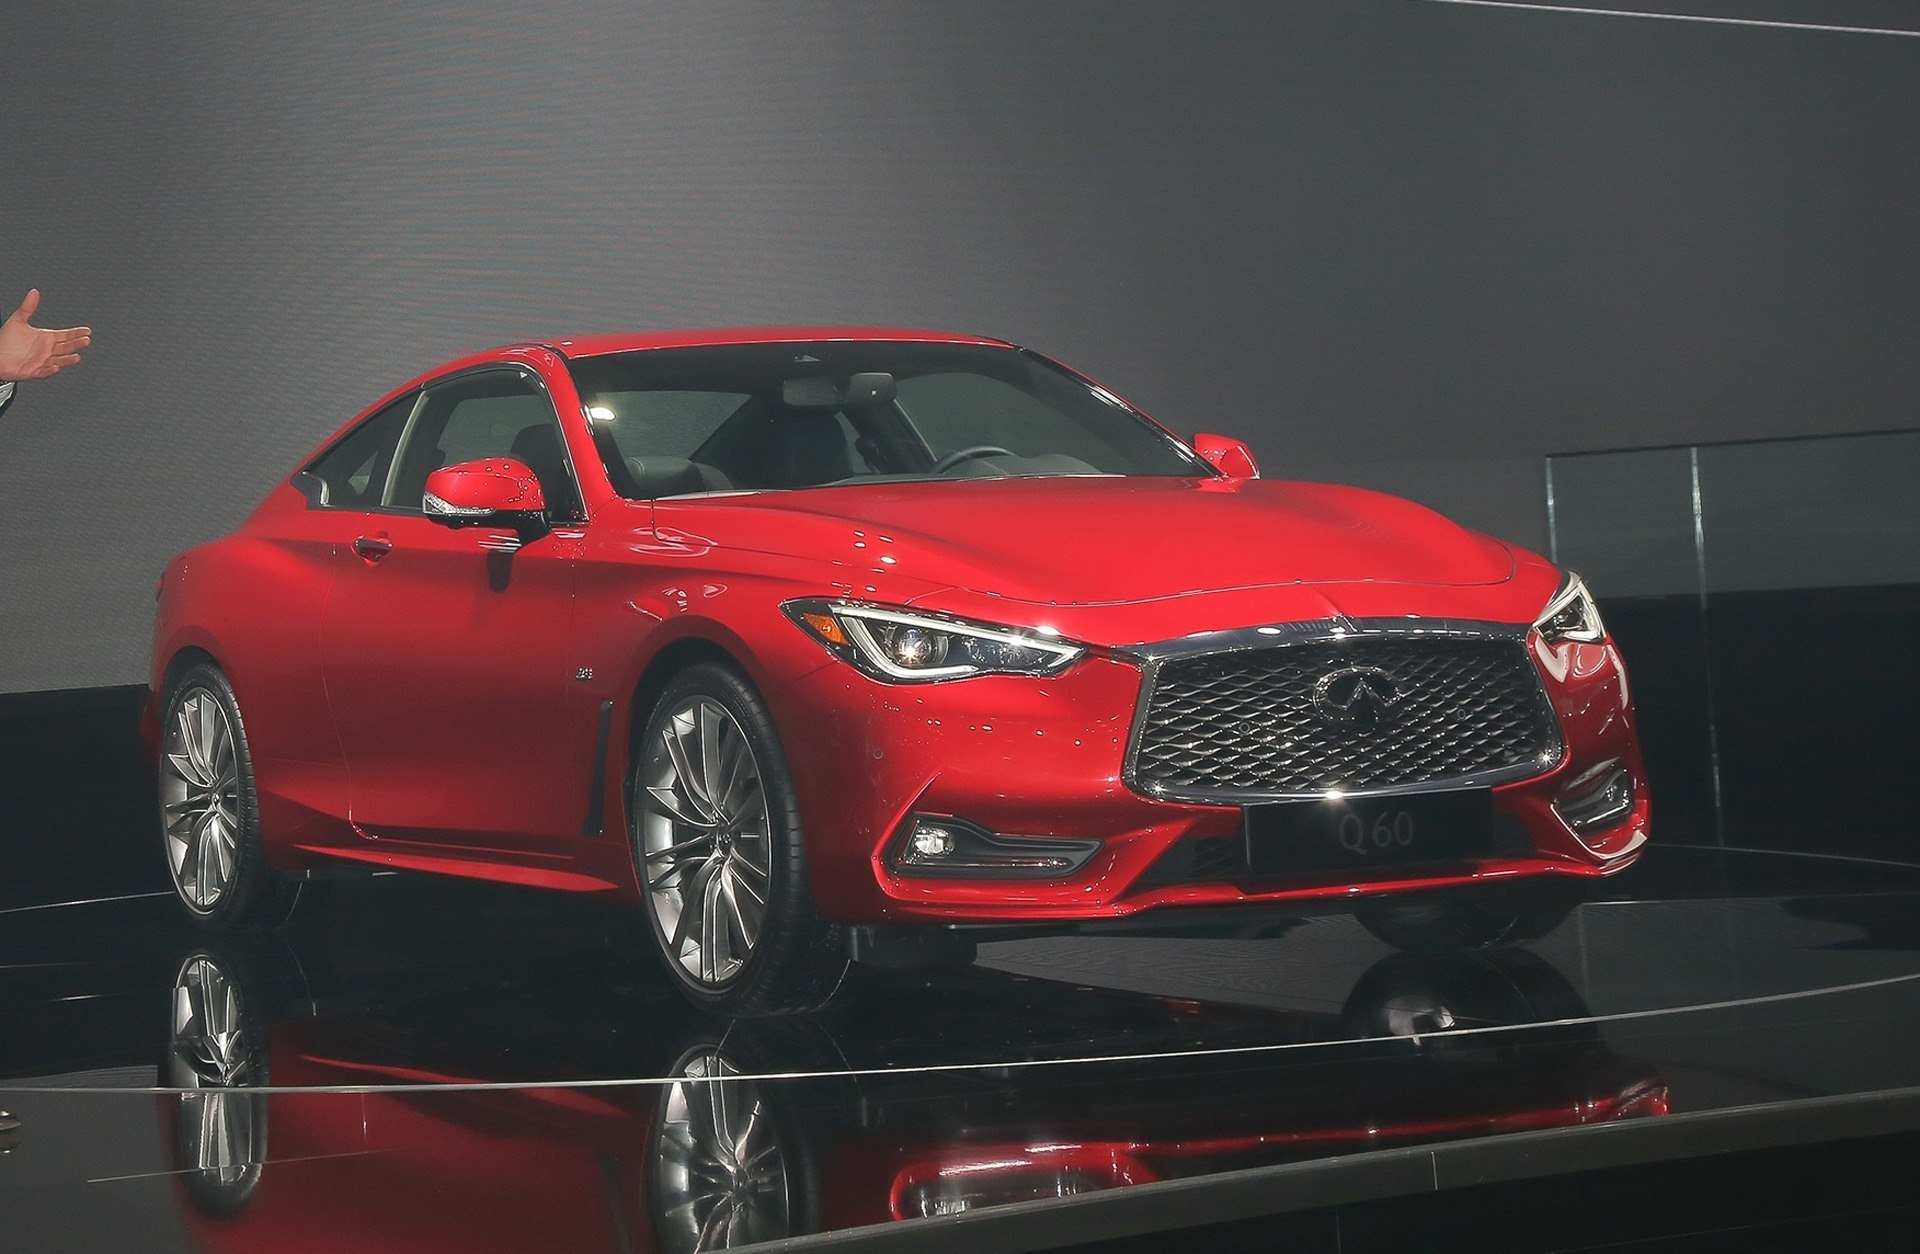 41 A 2020 Infiniti Q60 Coupe Redesign And Review